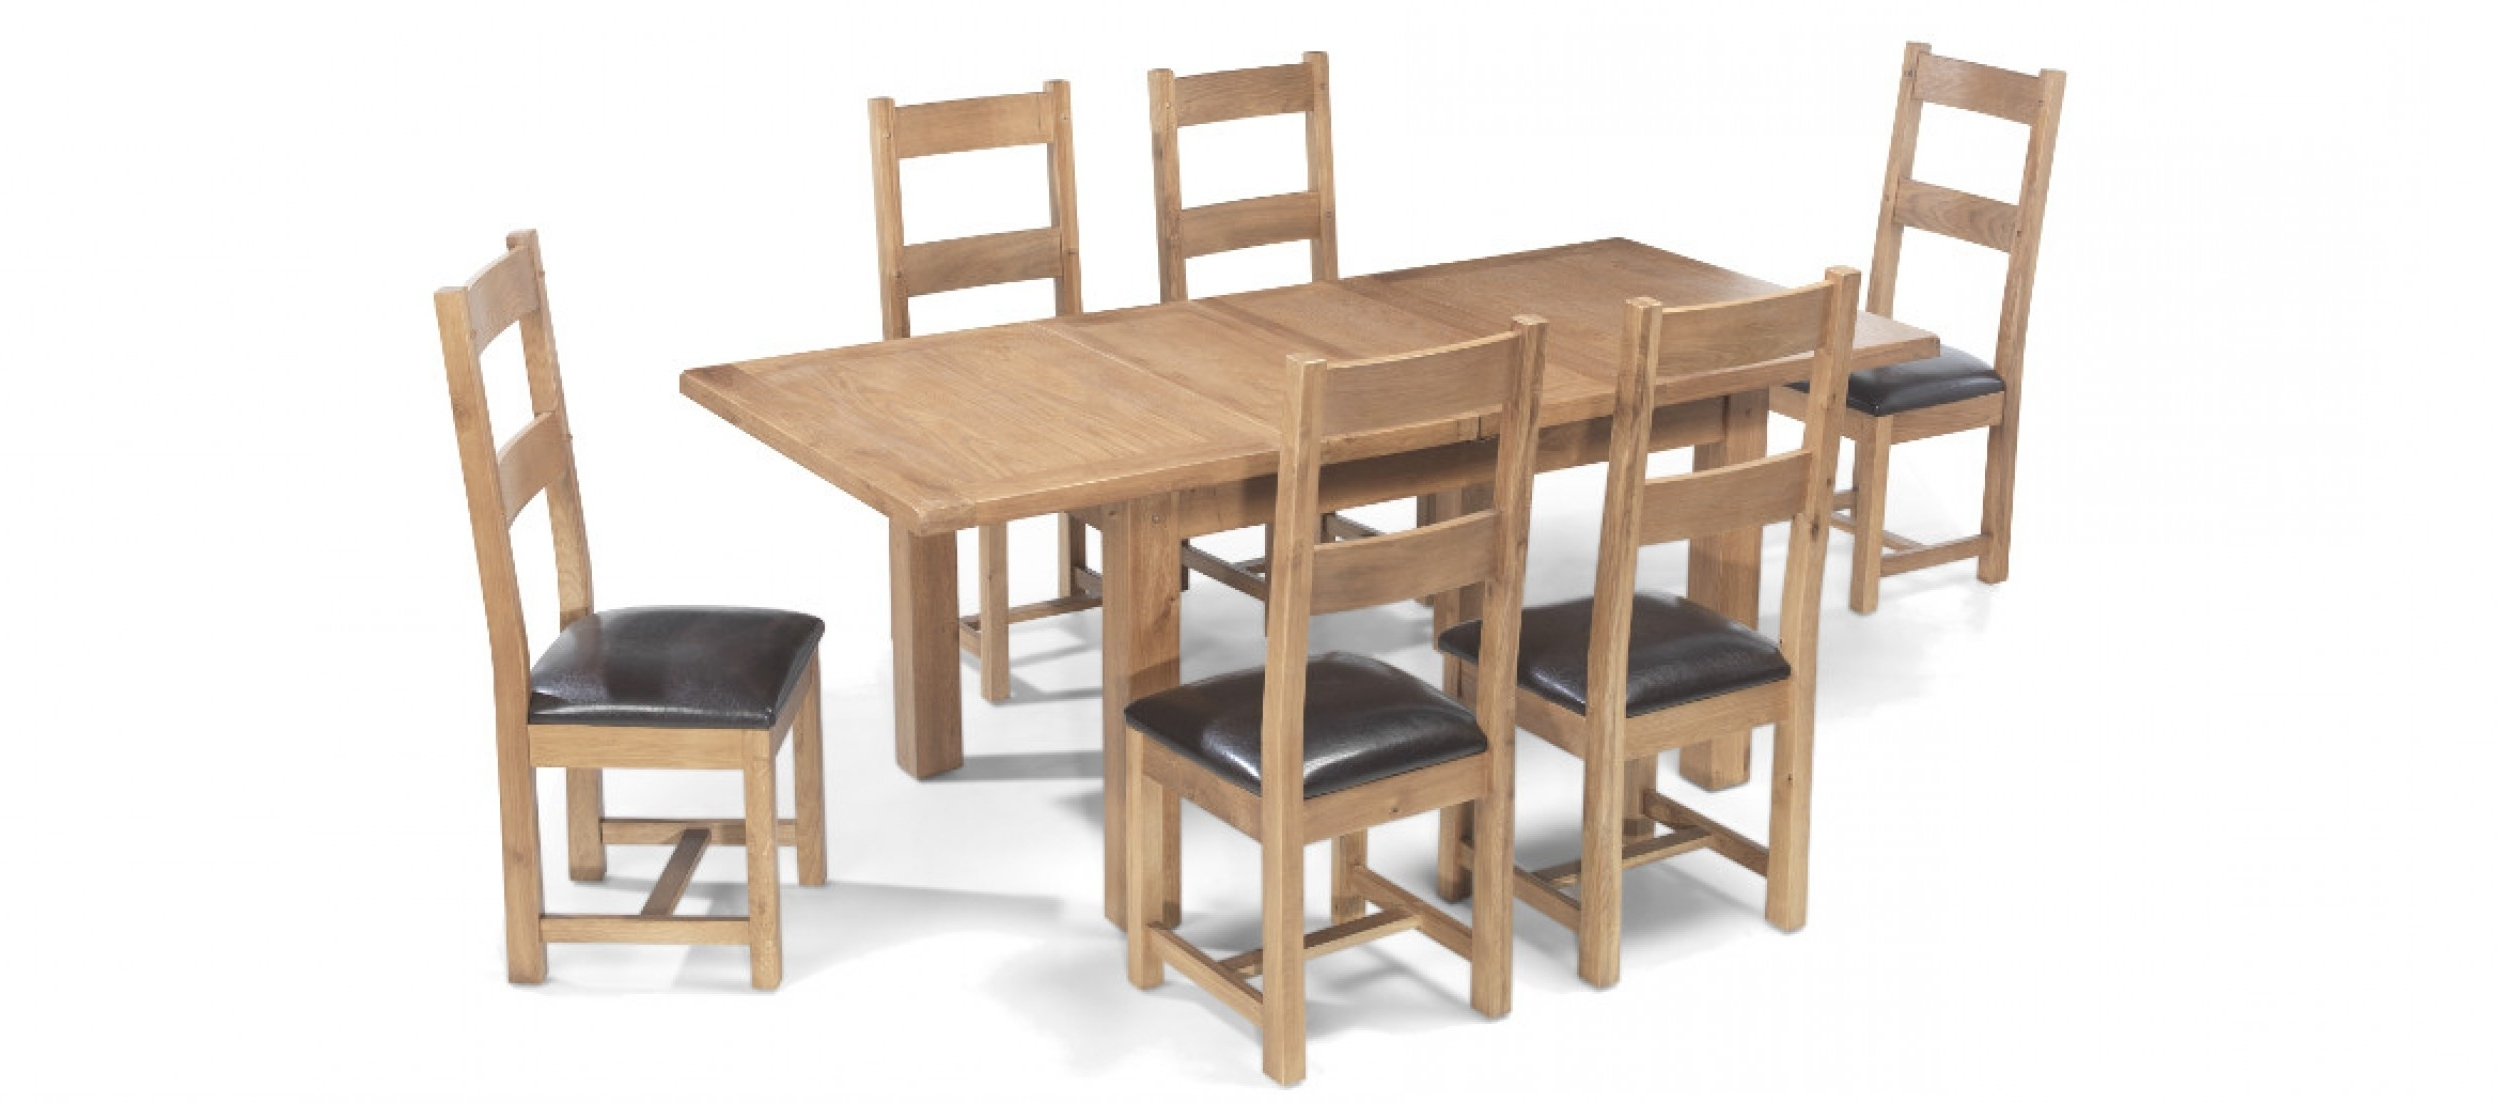 Most Popular Extendable Dining Tables And 6 Chairs In Rustic Oak 132 198 Cm Extending Dining Table And 6 Chairs (View 3 of 25)